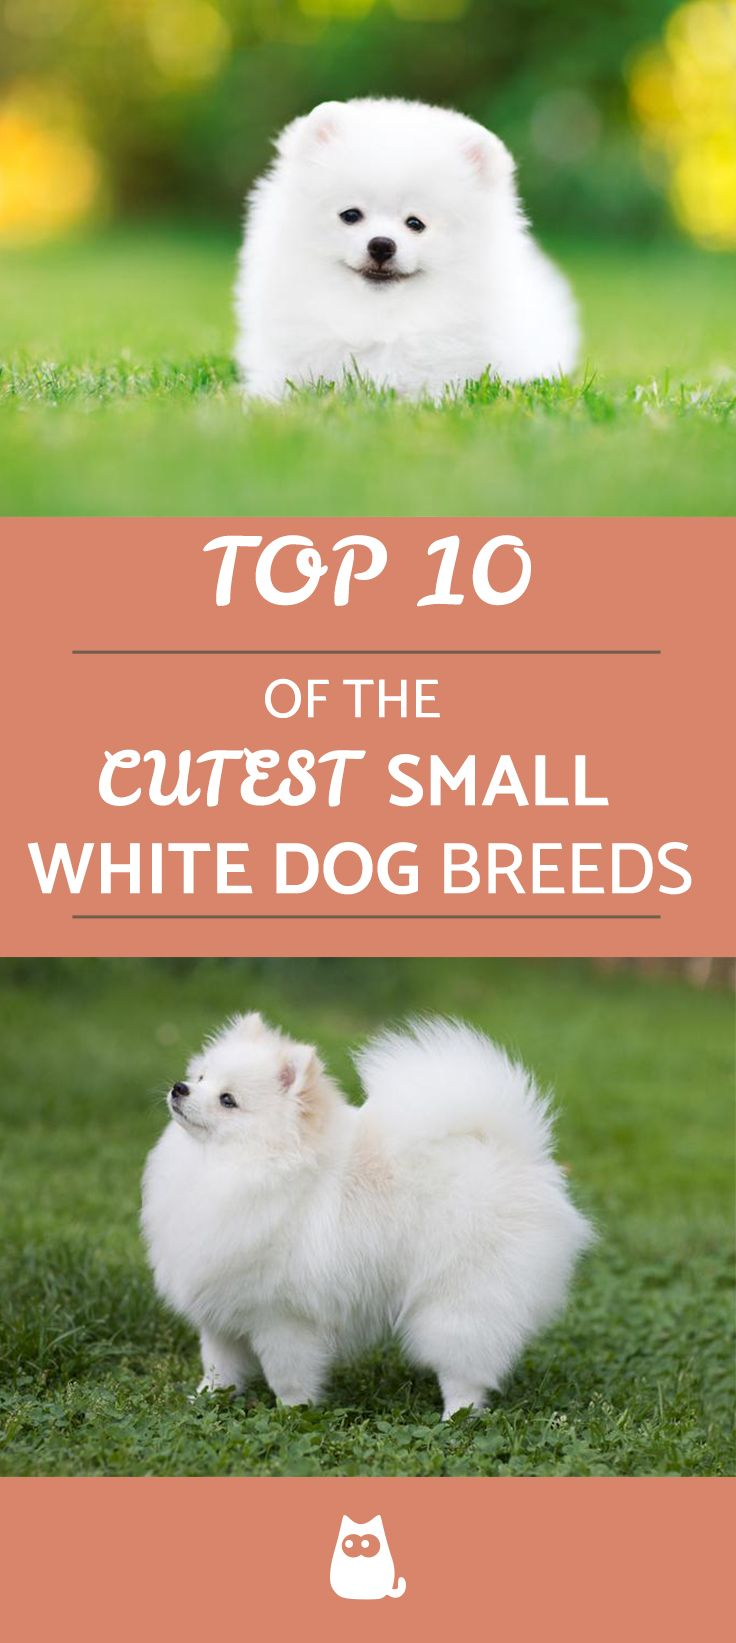 Small White Dog Breeds Top 10 With Pictures White Dog Breeds Dog Breeds White Dogs